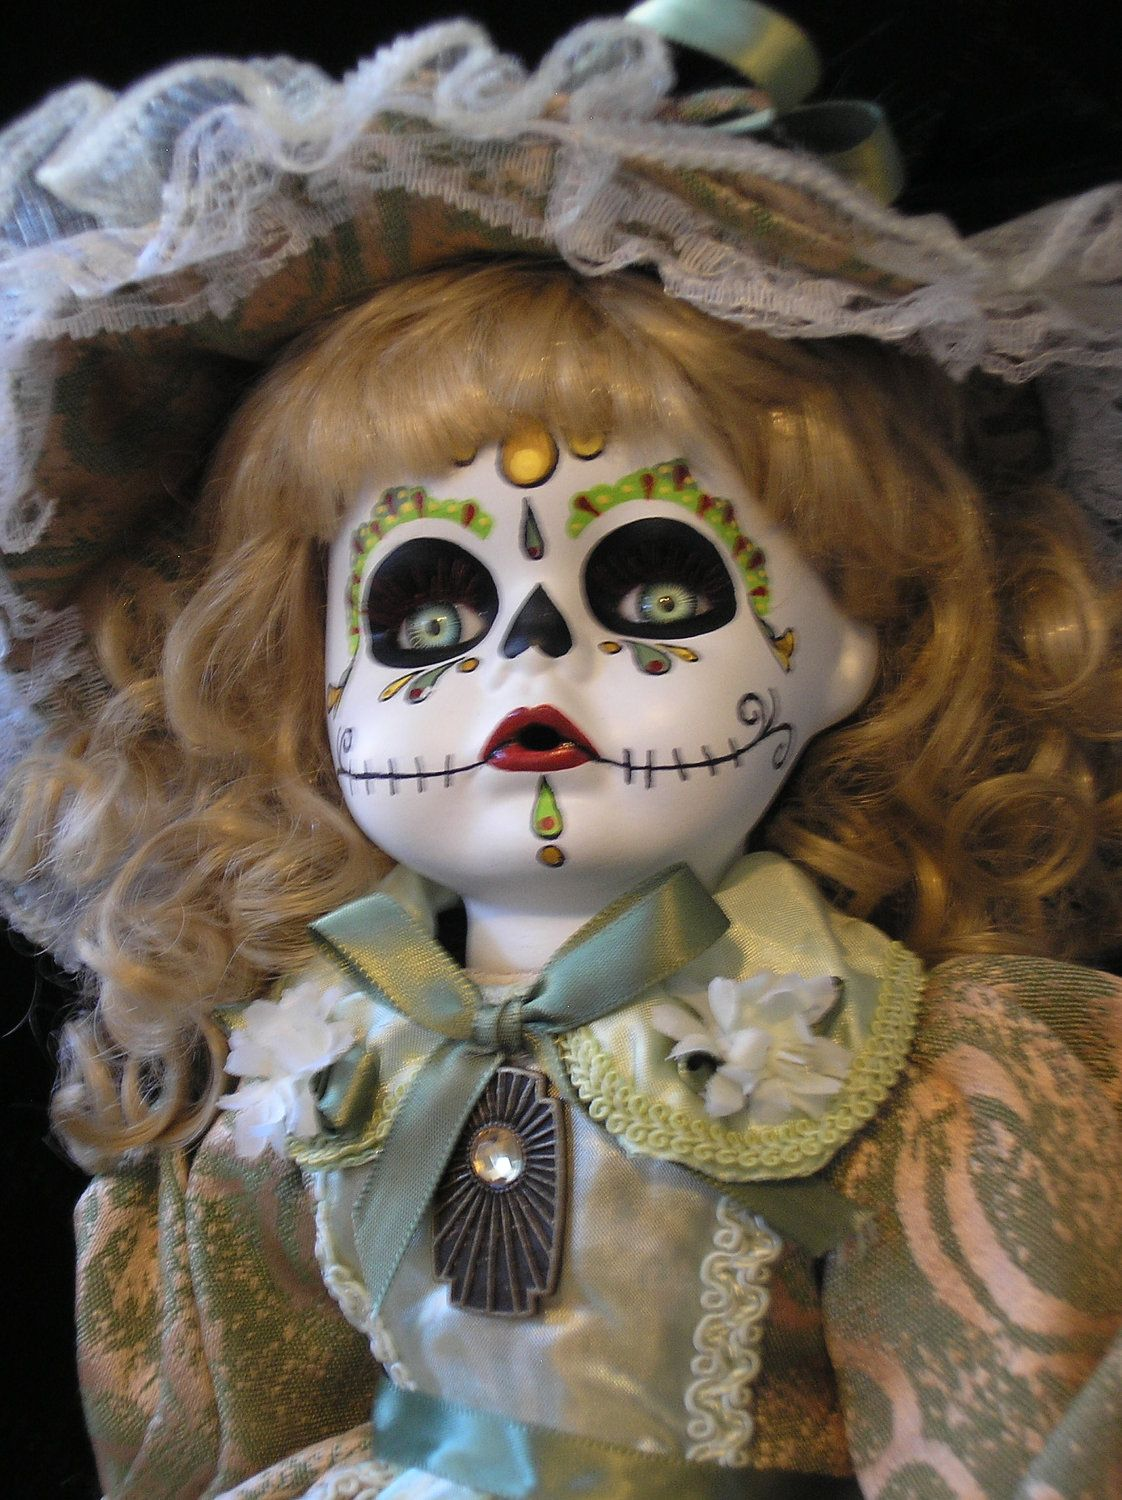 Hand Painted Day of the Dead Sugar Skull Porcelain Doll No.4